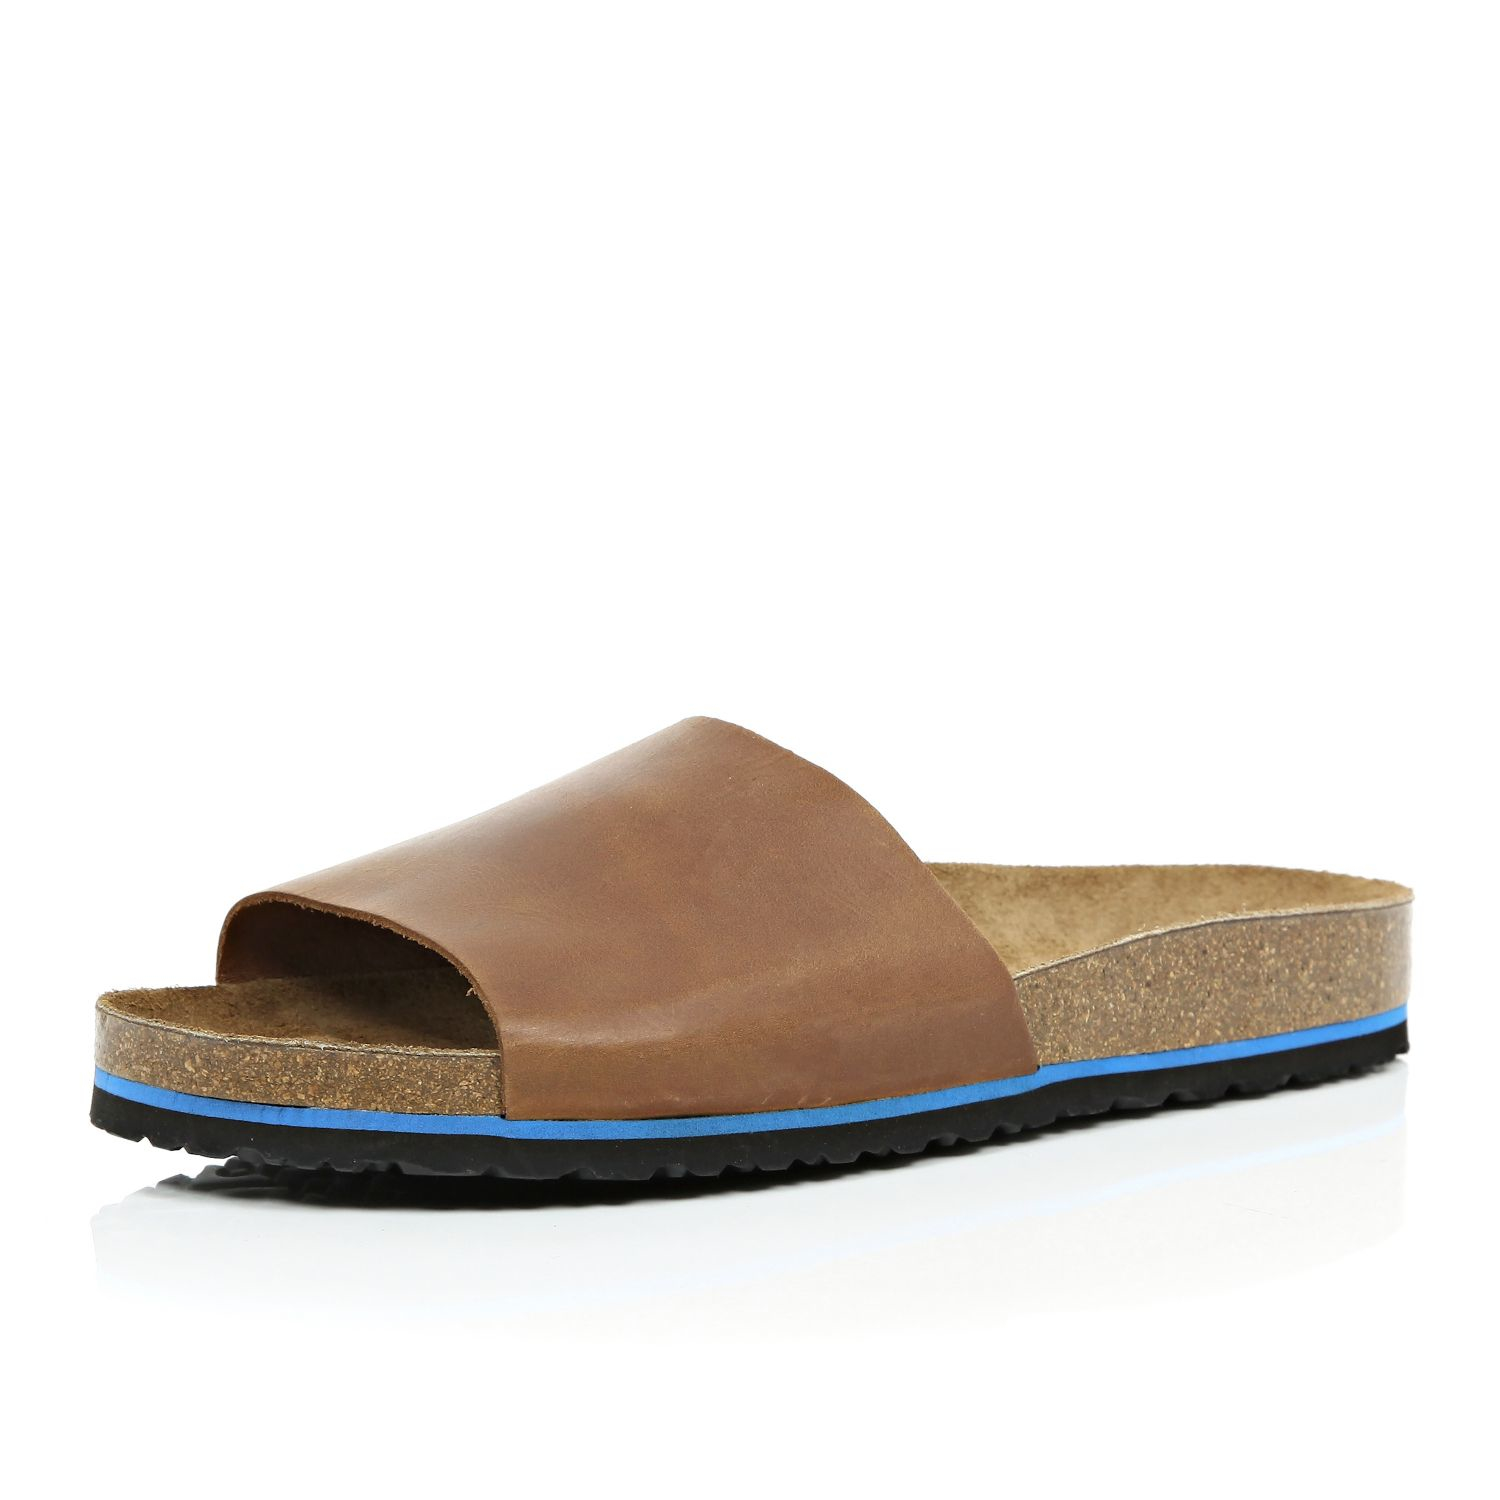 River Island Brown Leather Slide Sandals In Brown For Men